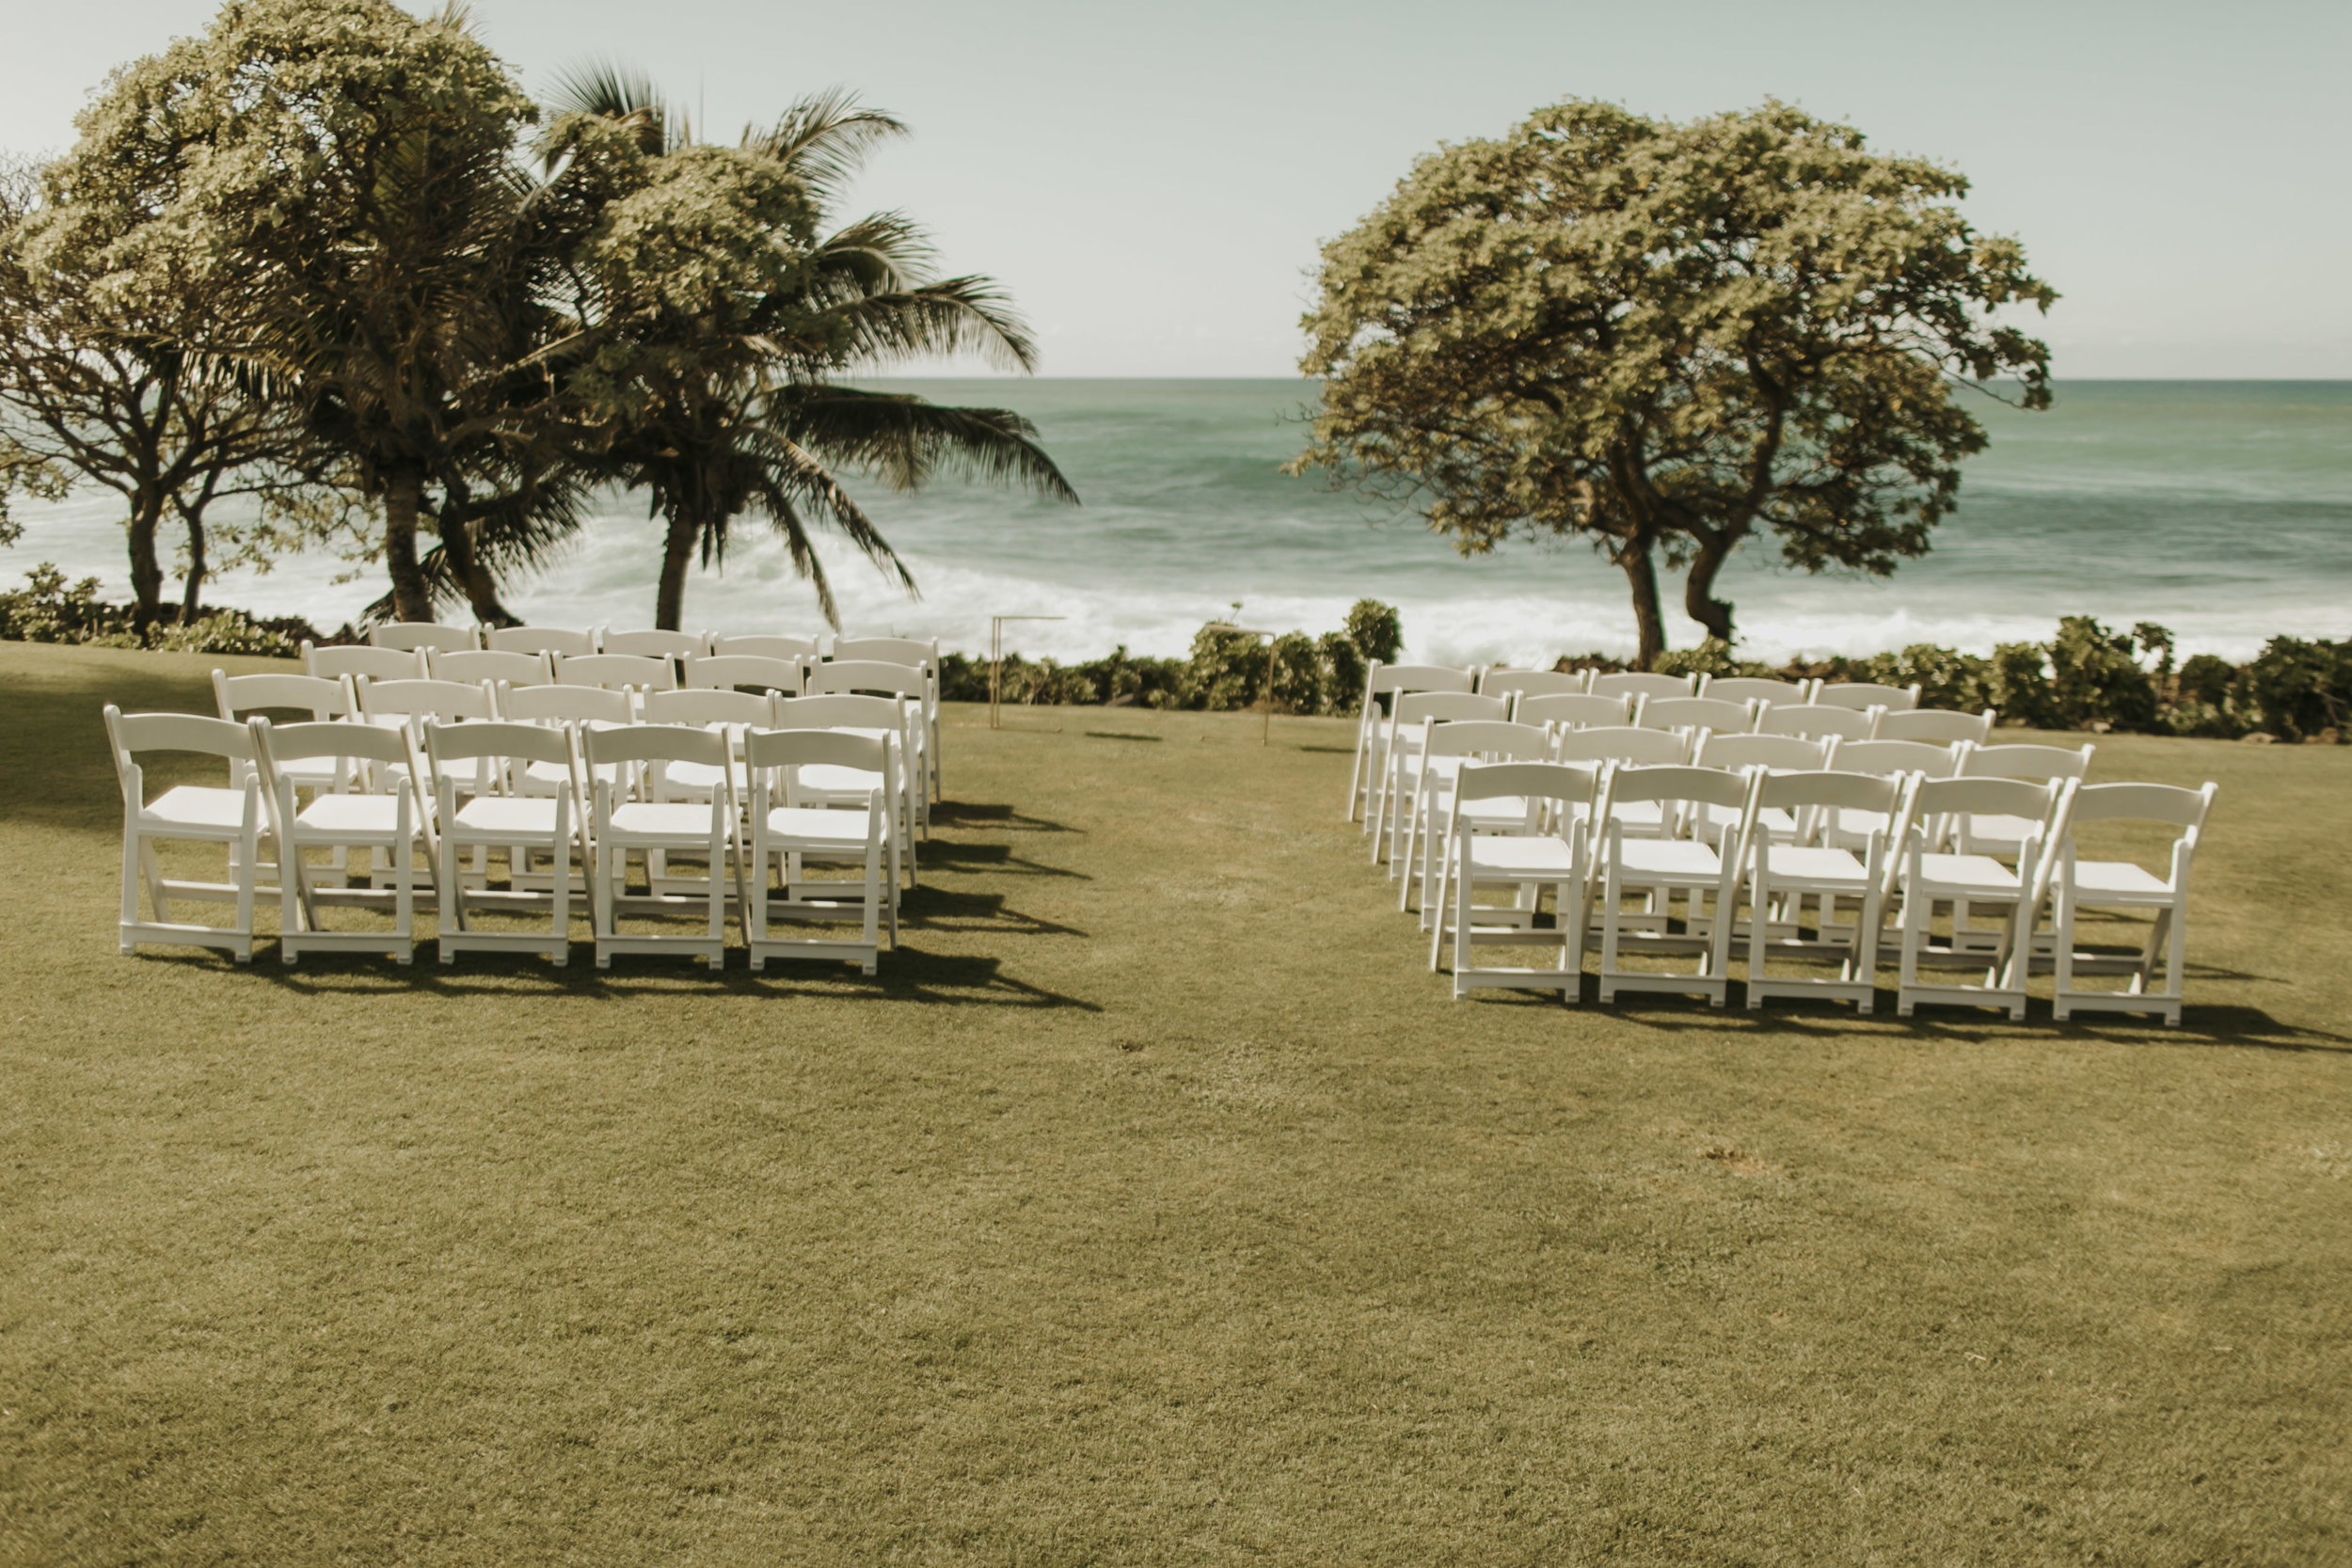 Turtle Bay Resort Photographer - Click this image to see all of their wedding photos.